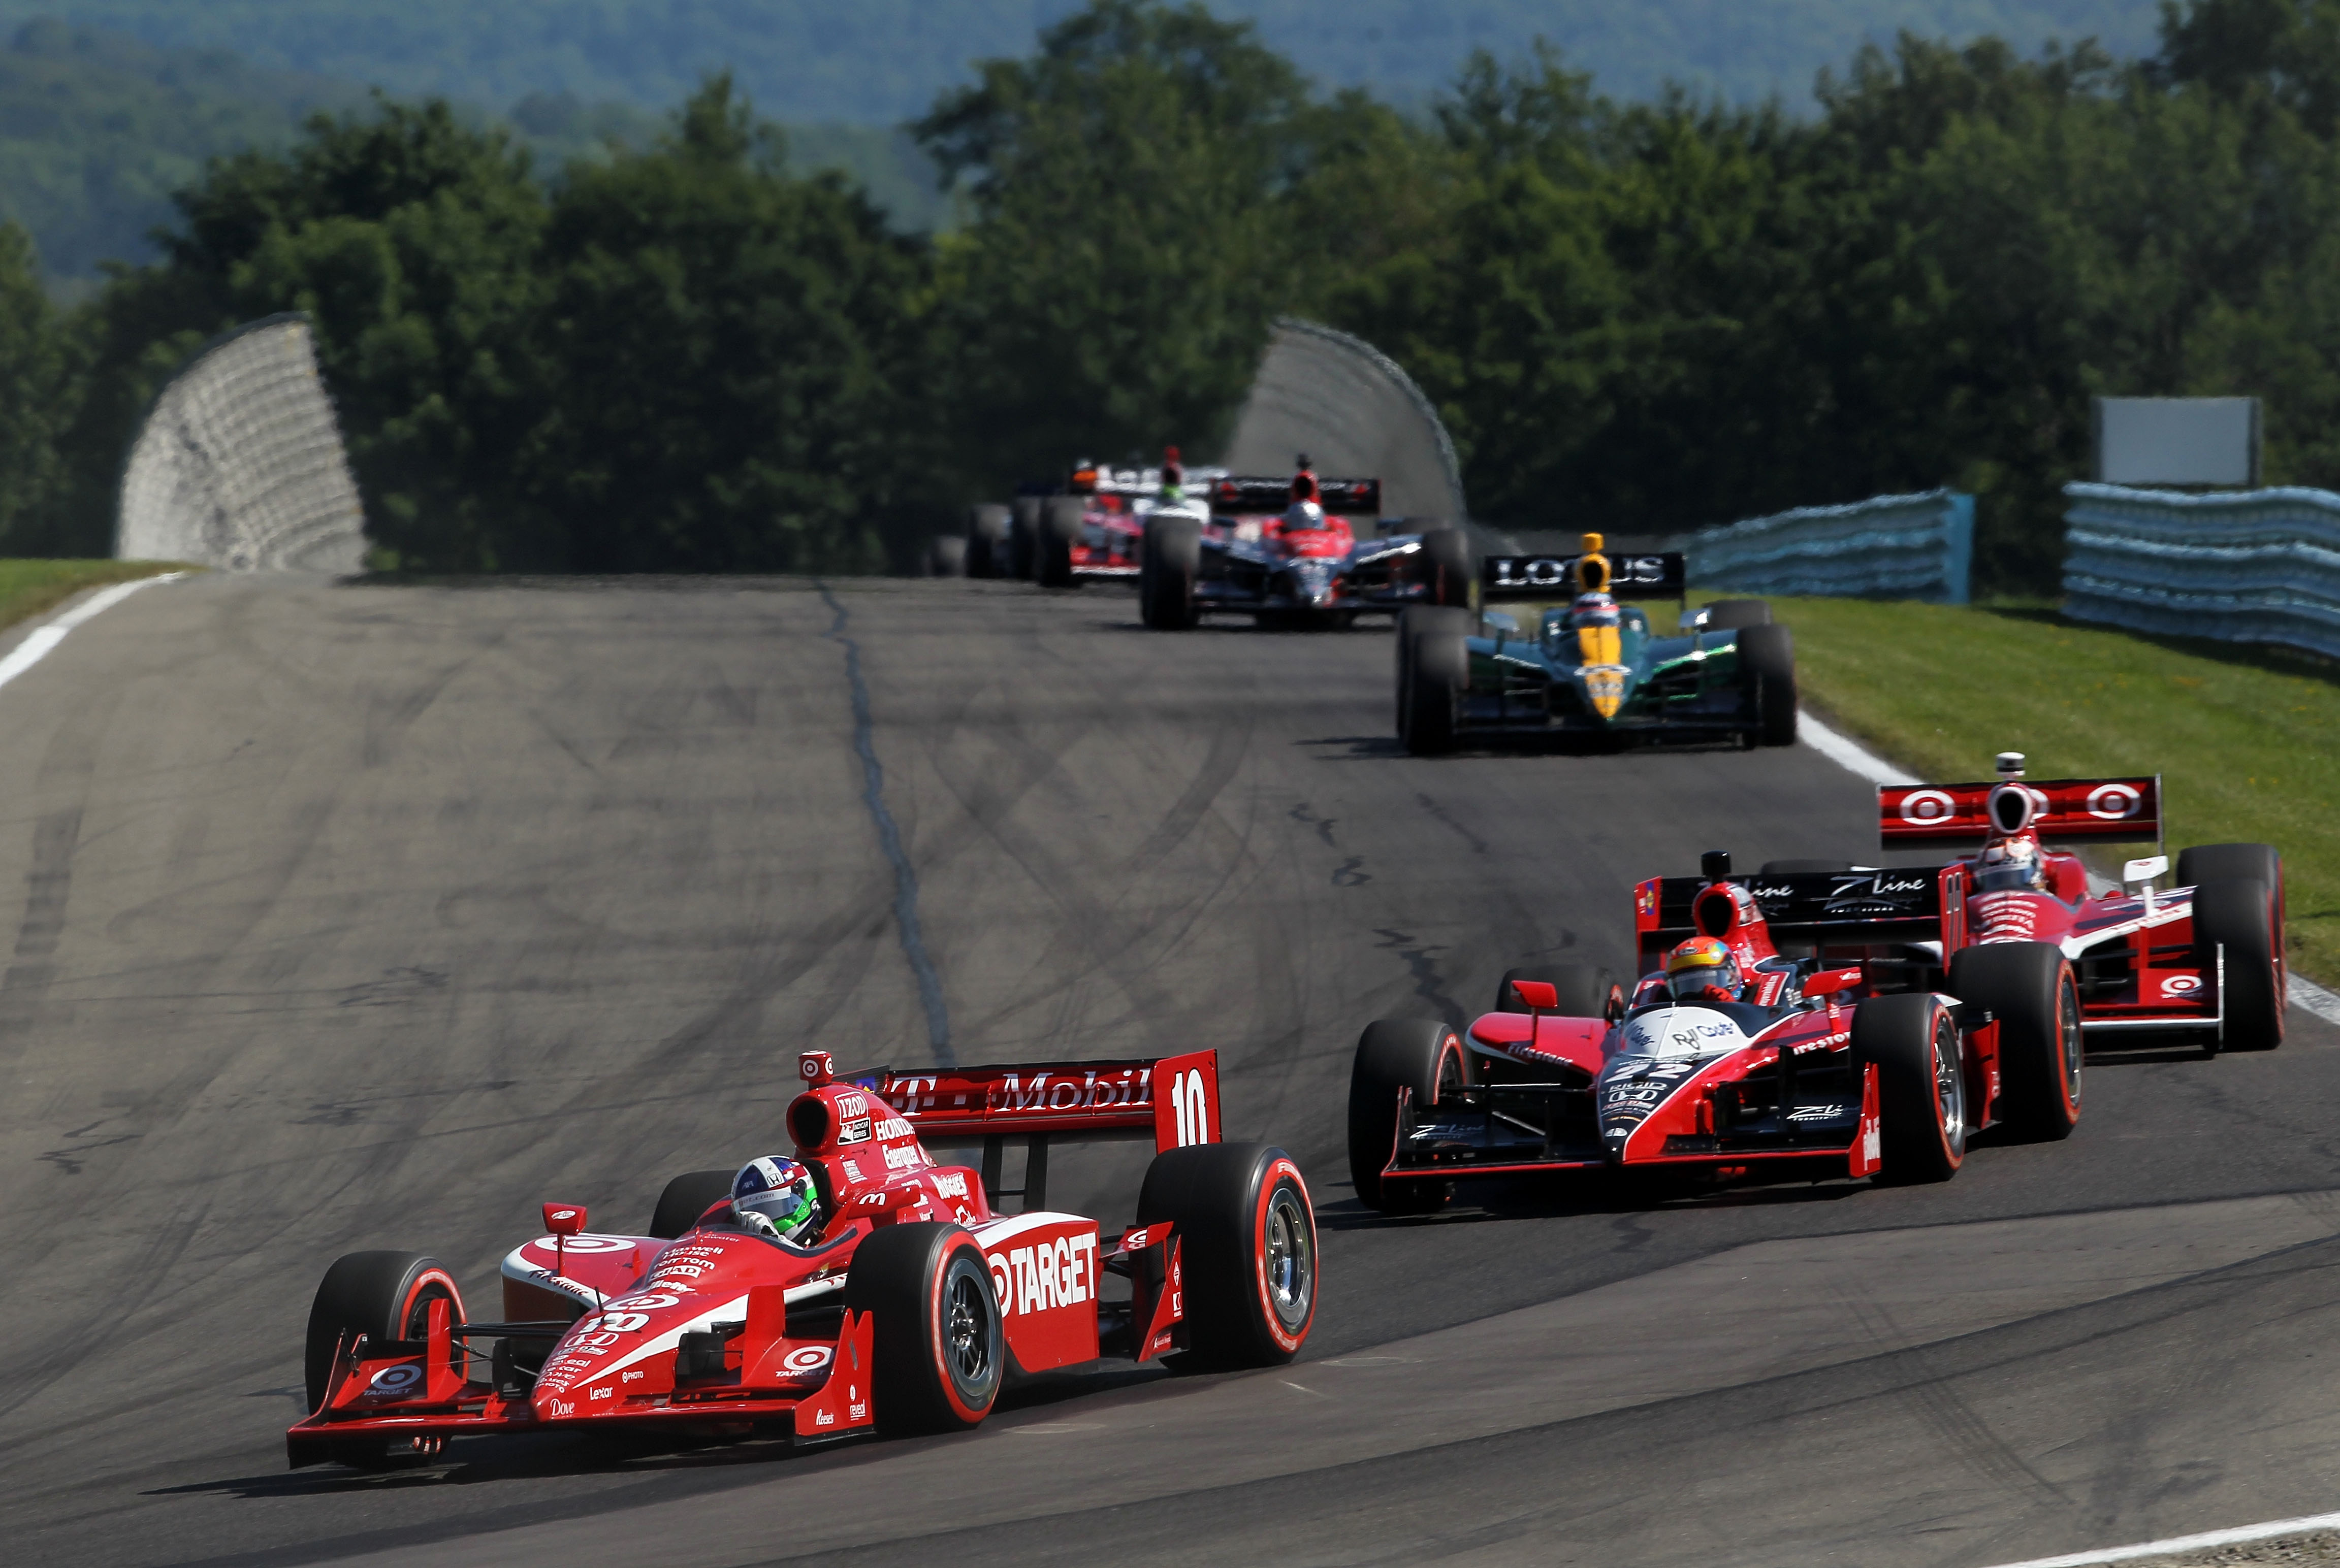 Rossi continues stout weekend, wins IndyCar pole at The Glen